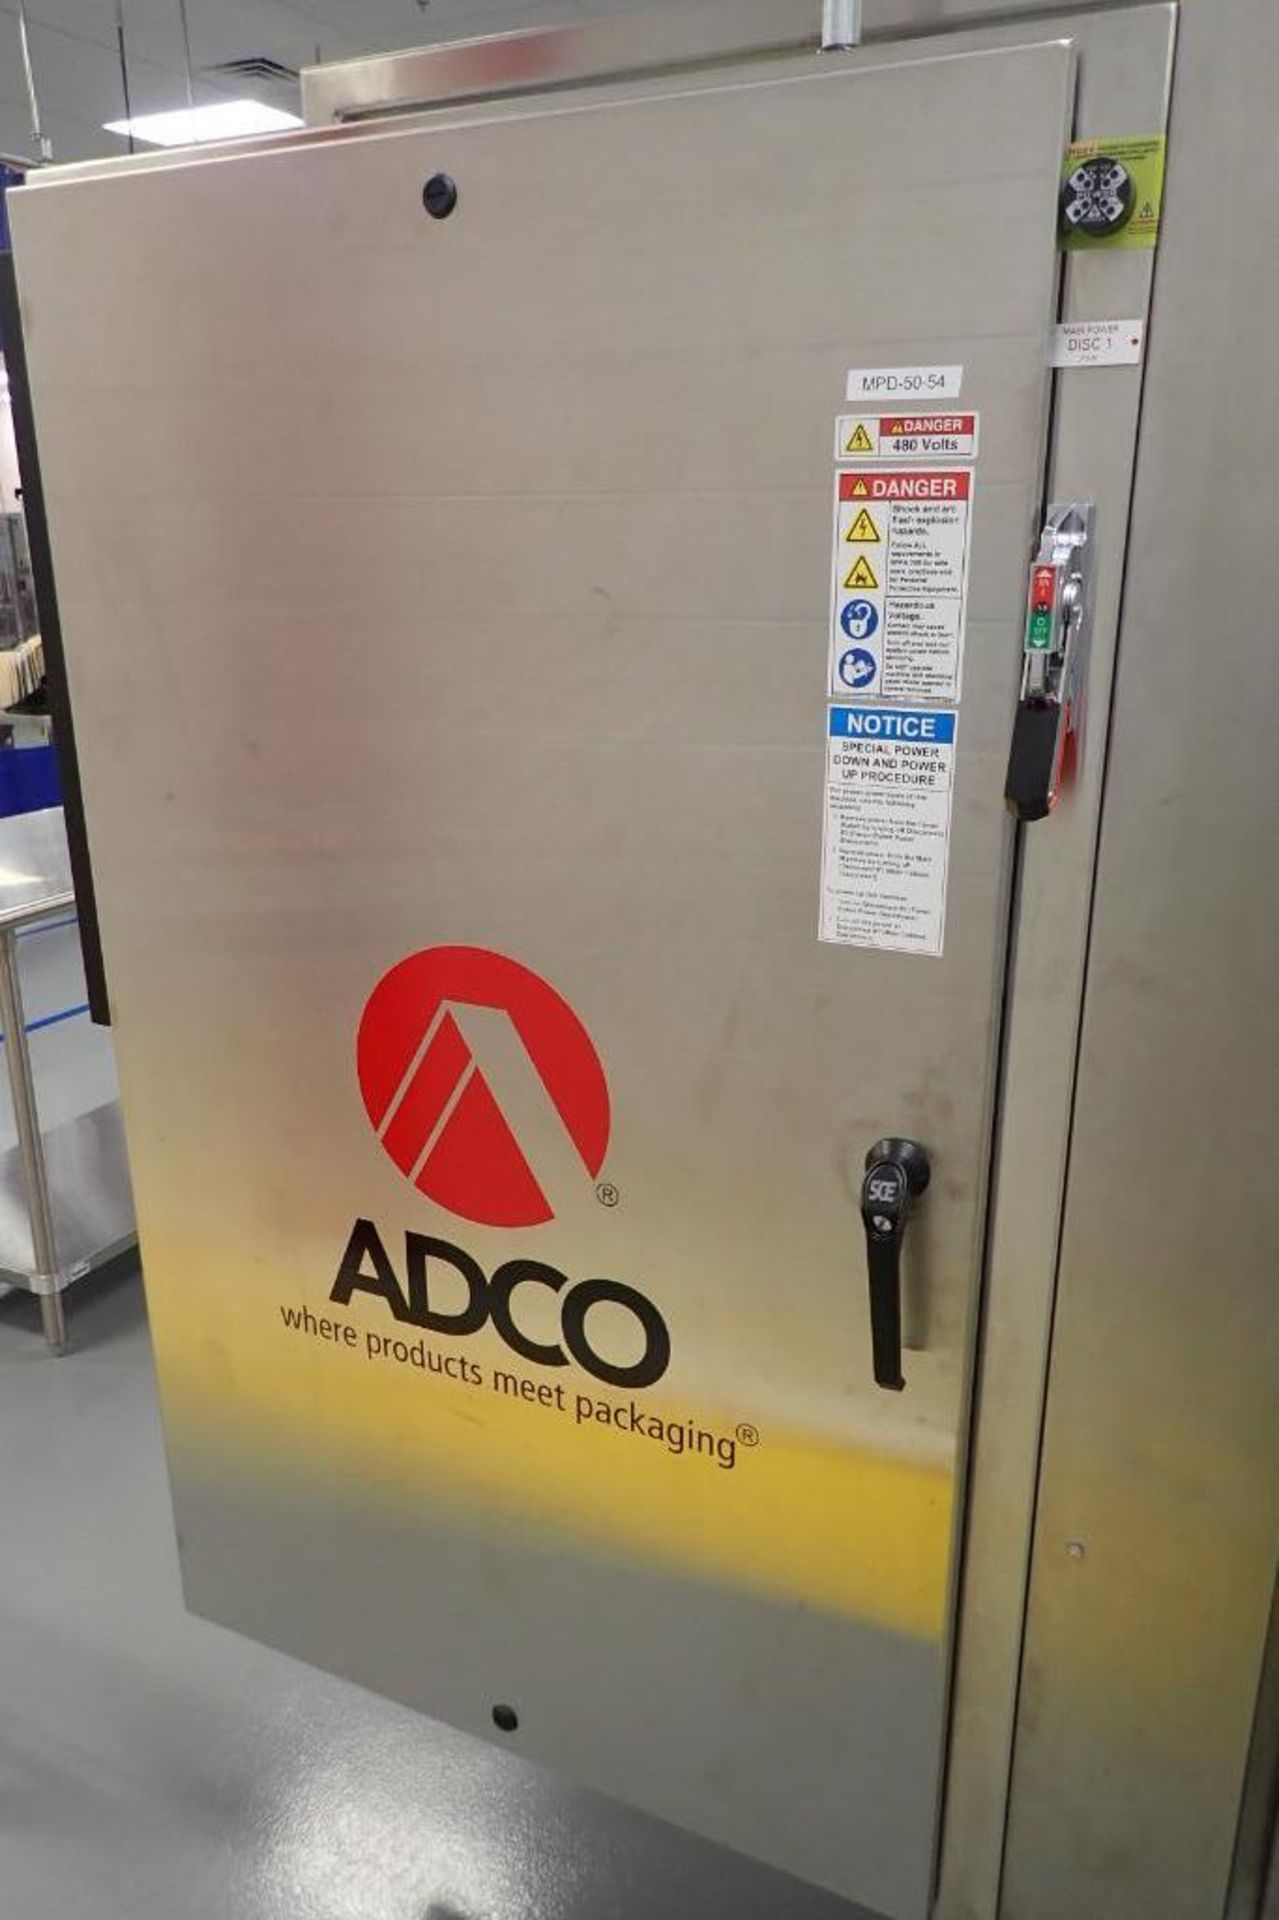 Lot 1 - 2015 Adco high speed wrap around sleever, Model 9WM110PW, SN 5624, 460 volt, 3 ph., 3.25 in. plastic